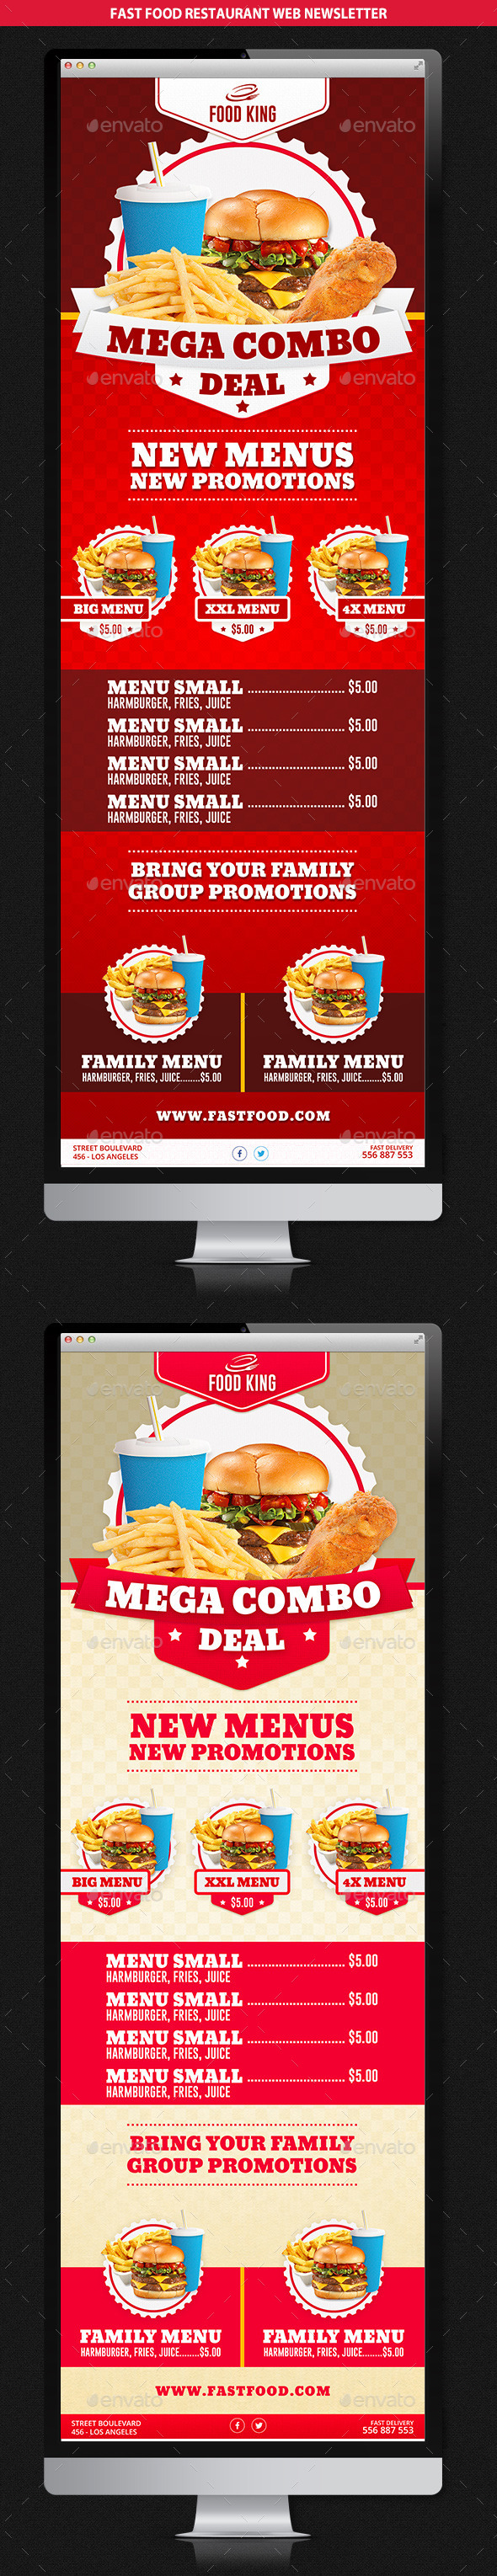 GraphicRiver Restaurant Fast Food Web Newsletter 10309620